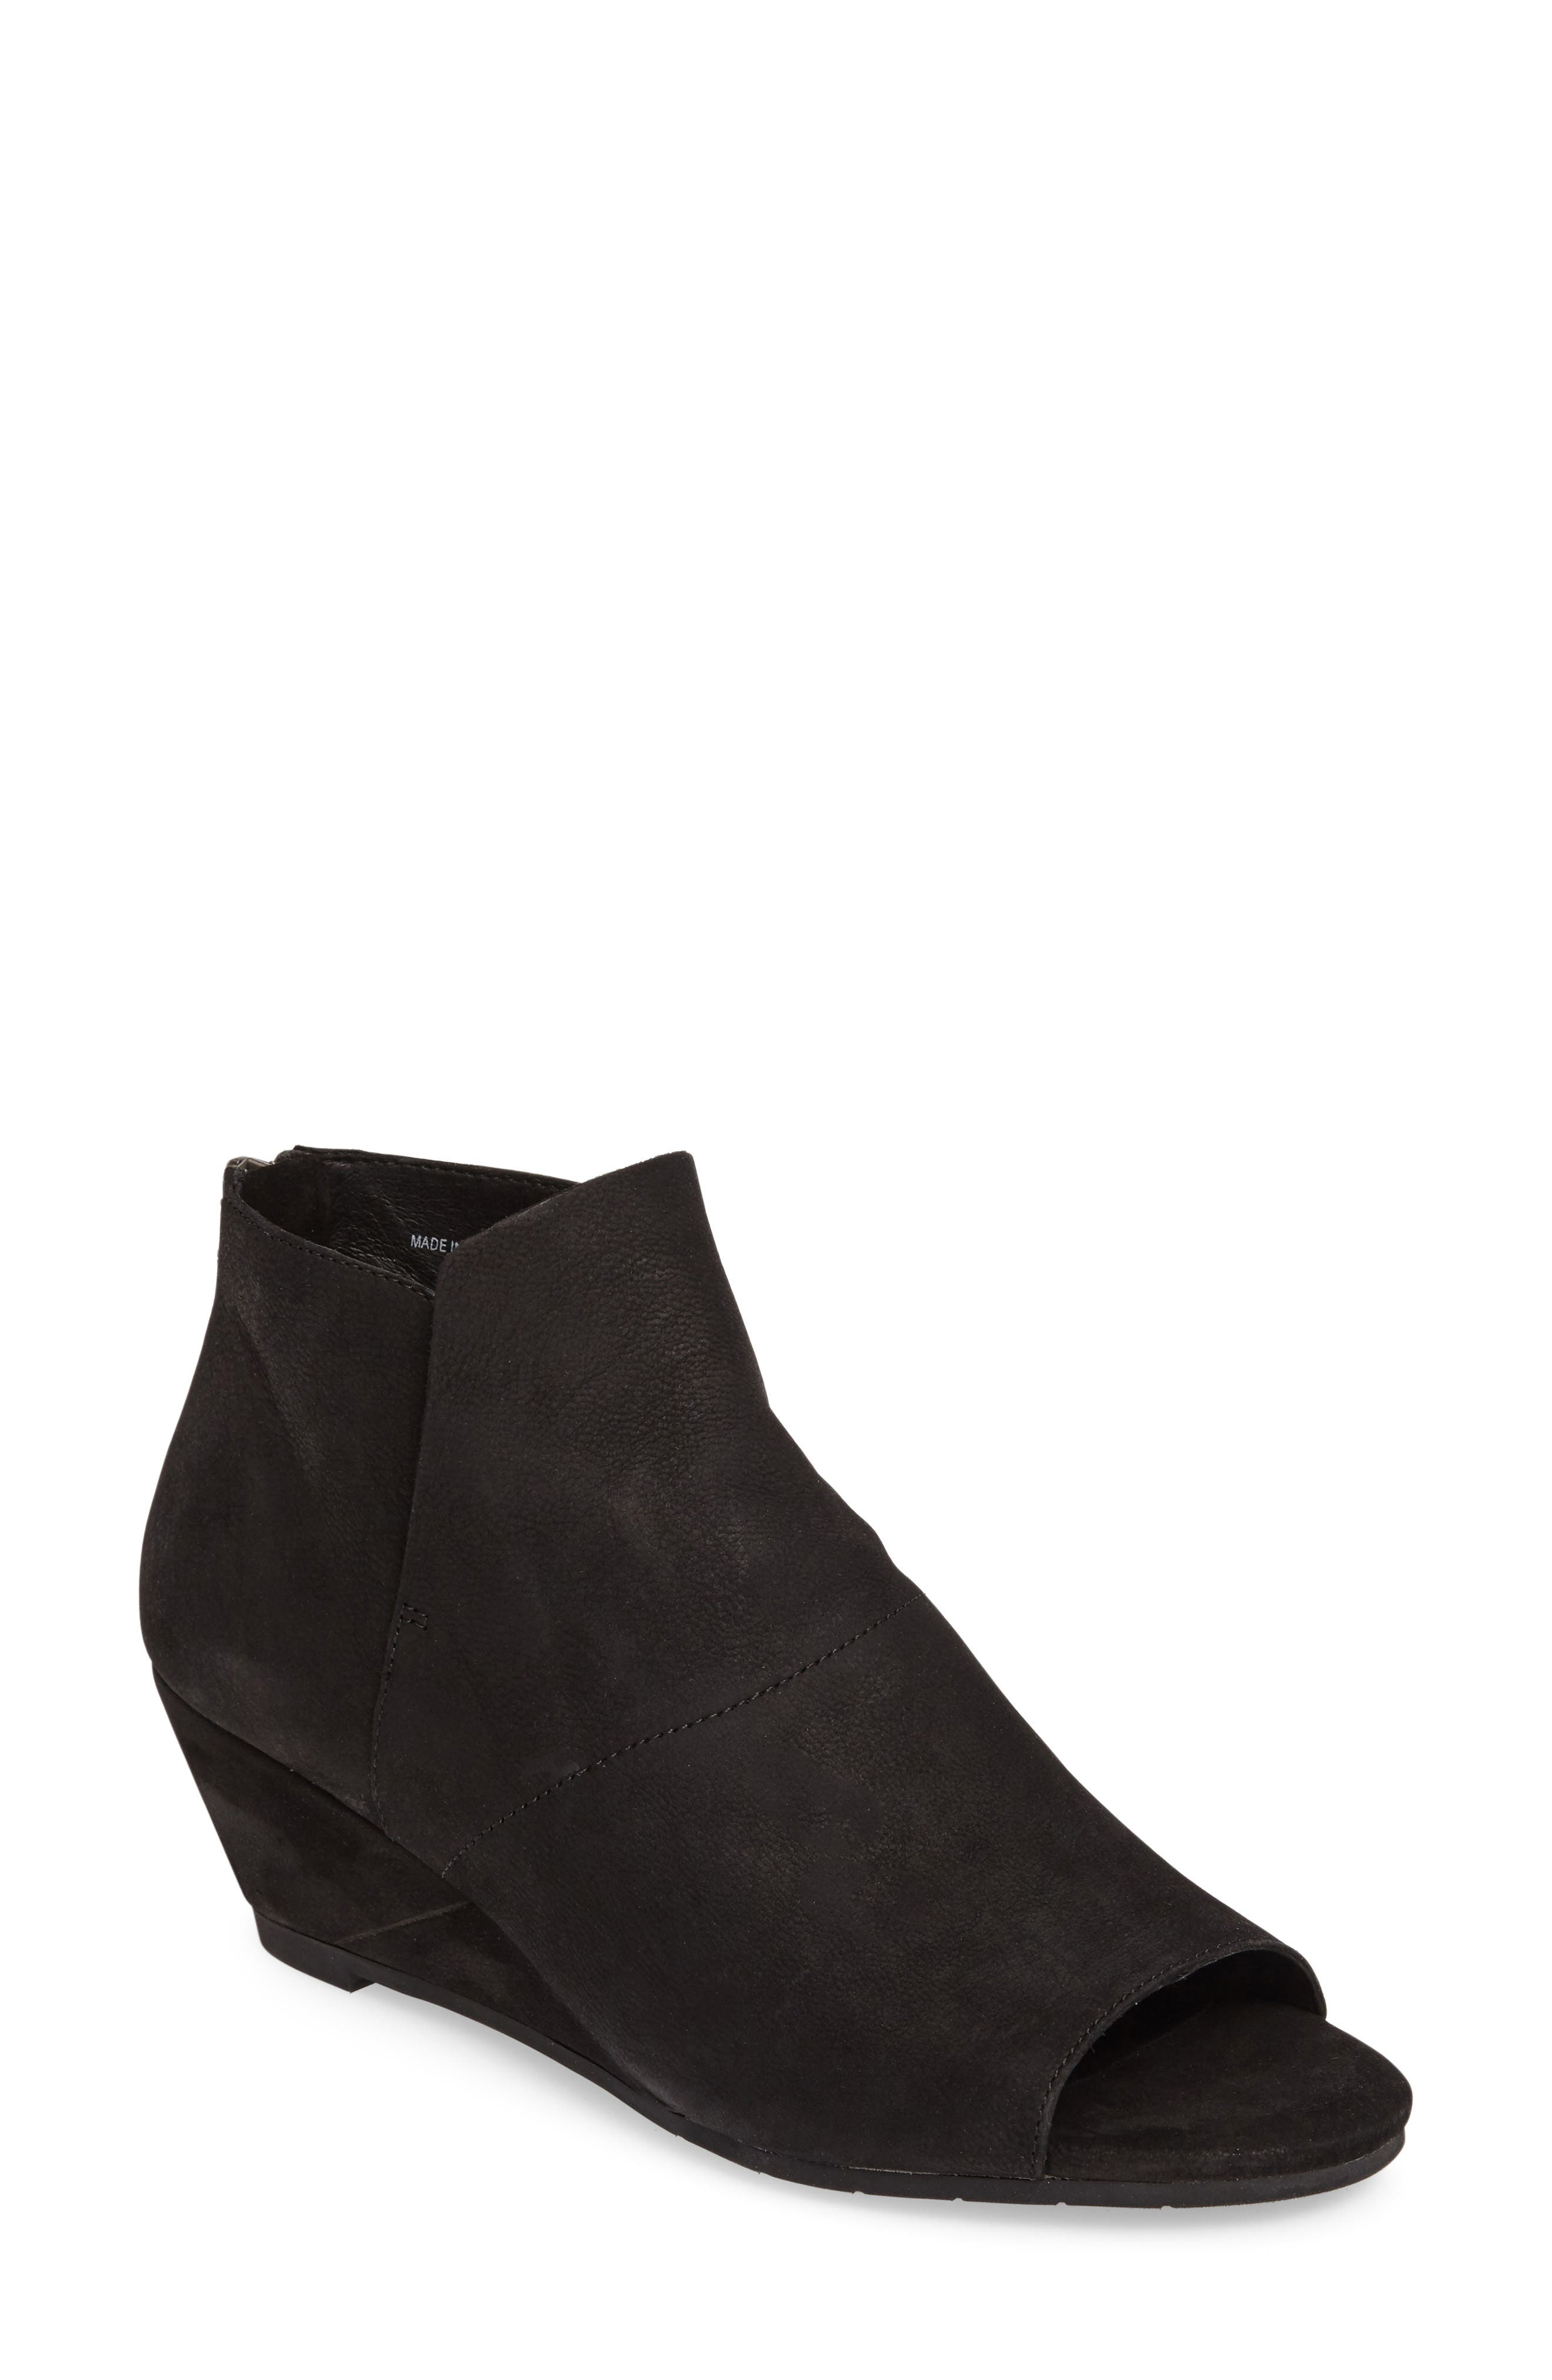 Duffy Open Toe Wedge Bootie, Main, color, 001